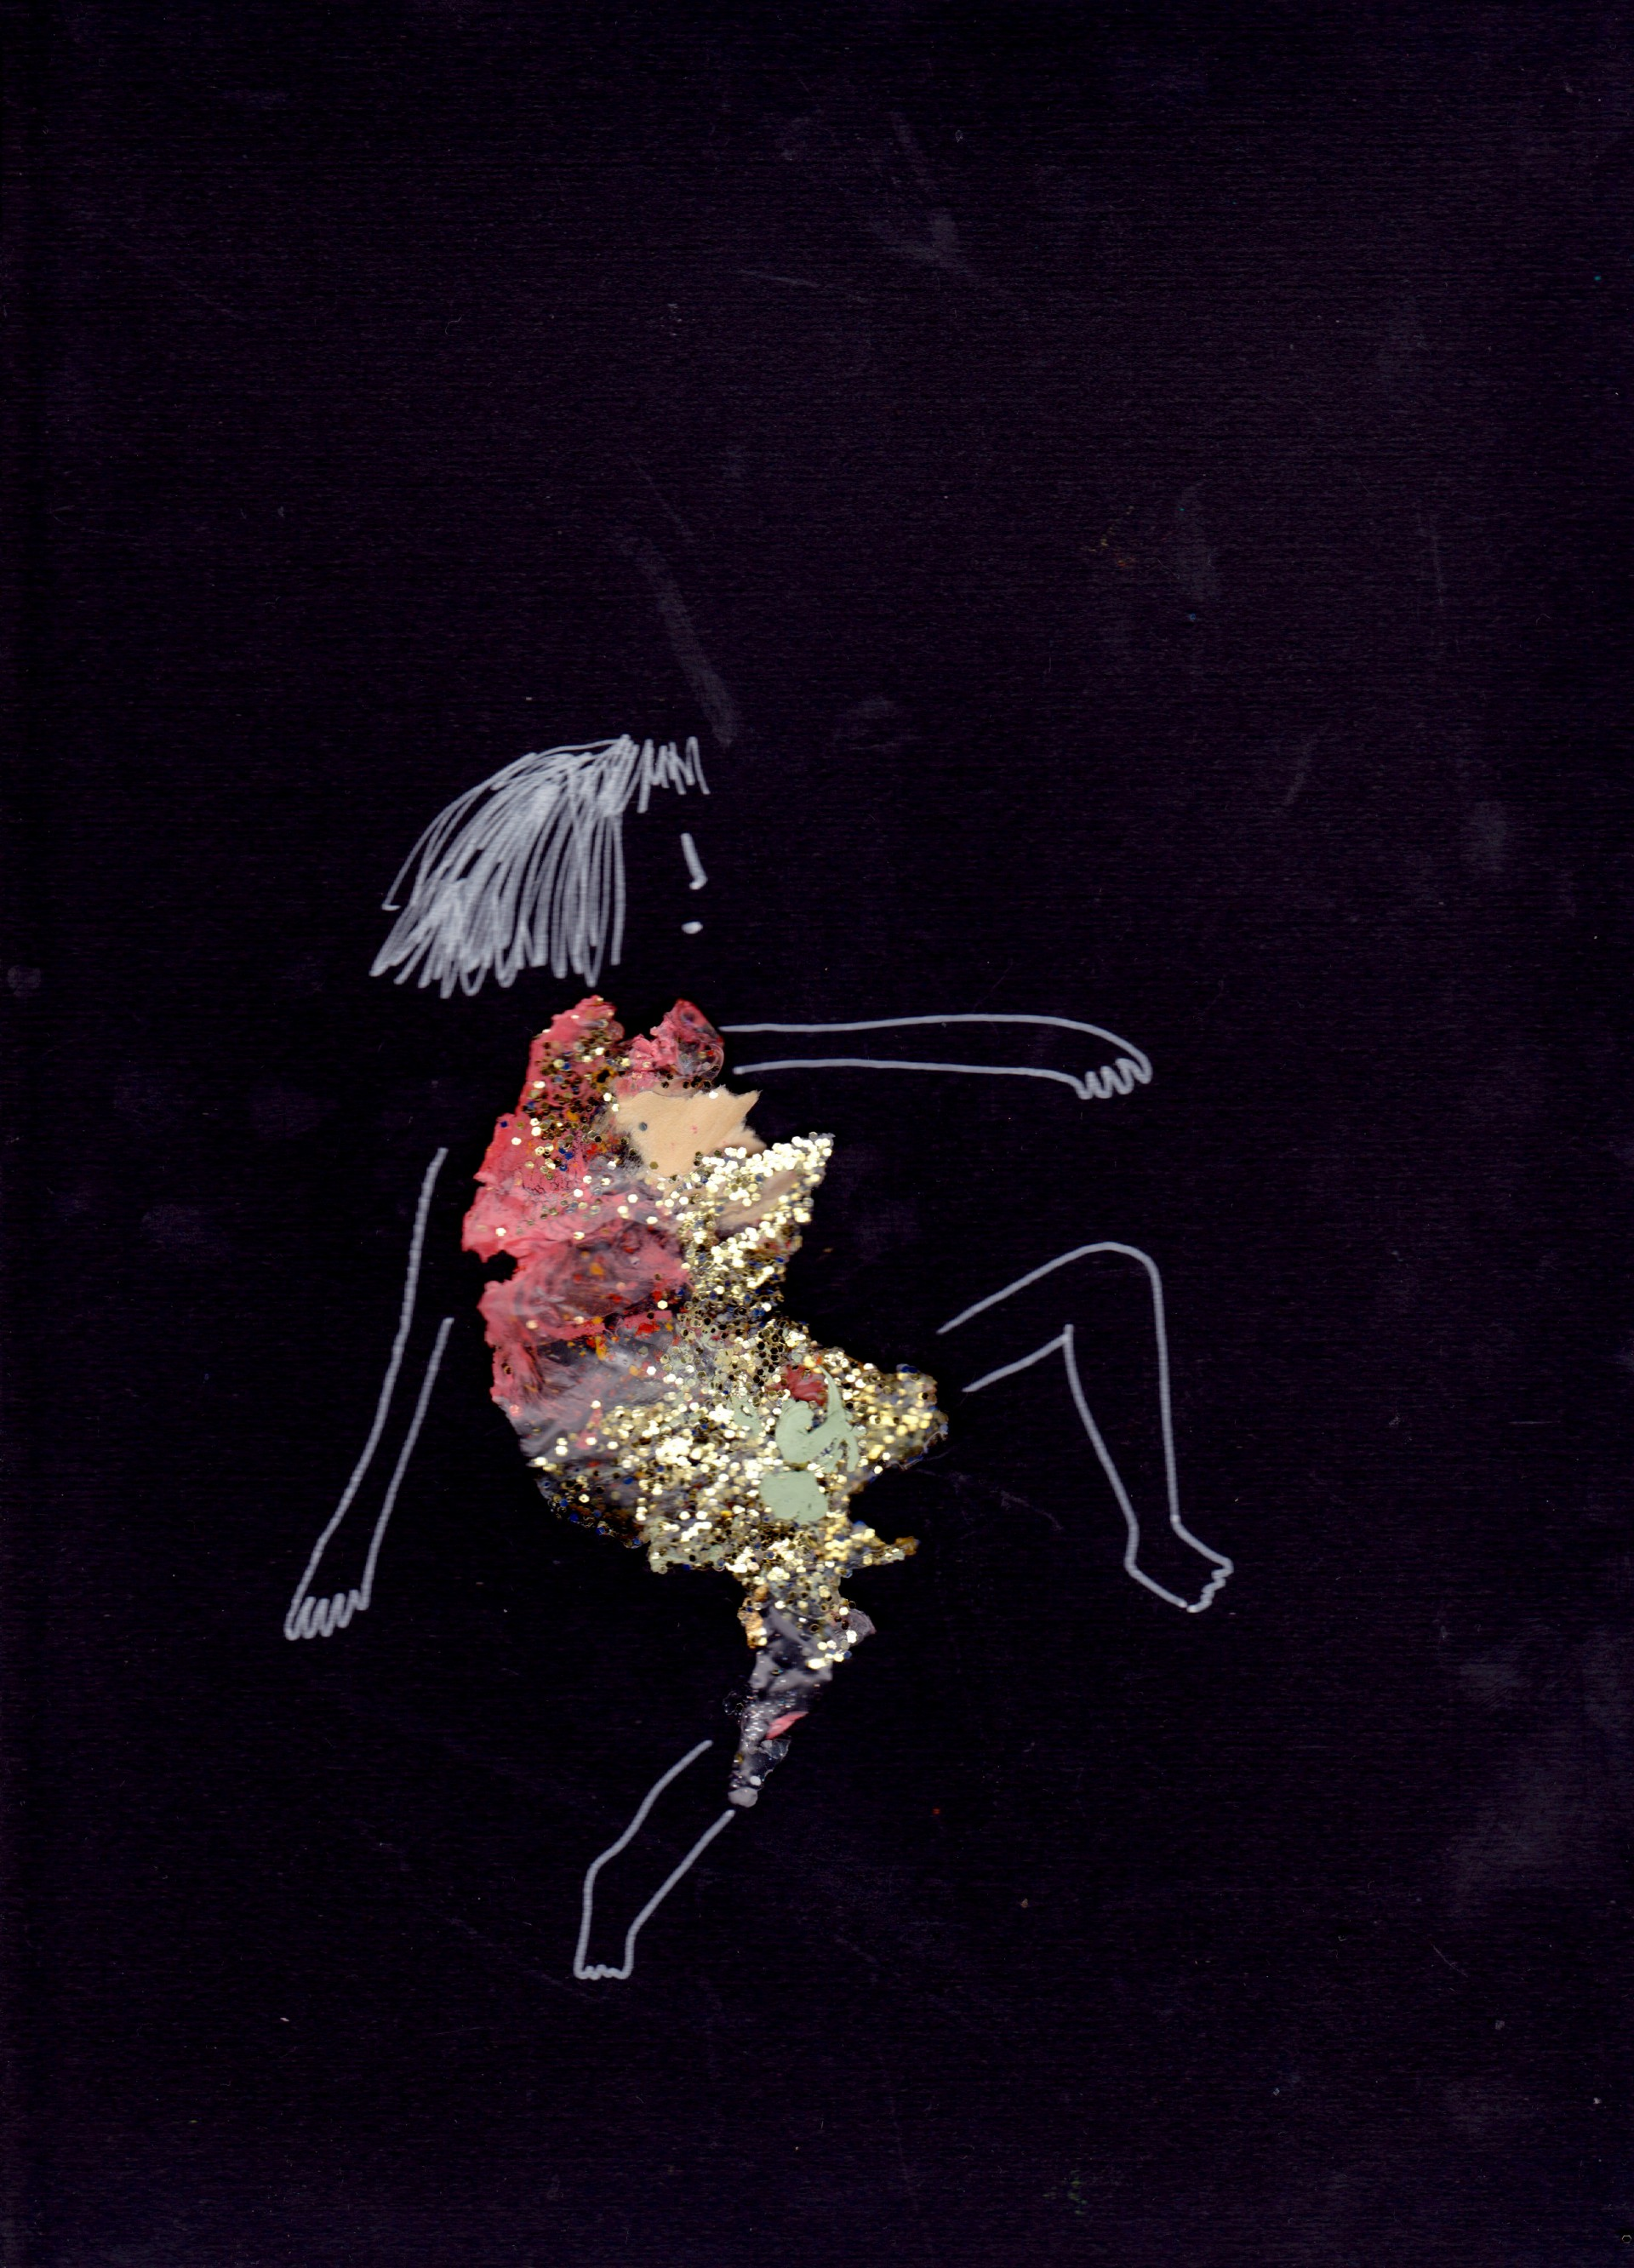 Girl in dancing position. Dress made of glitter. Legs, arms and face drawn in silver paint pen. Black background.